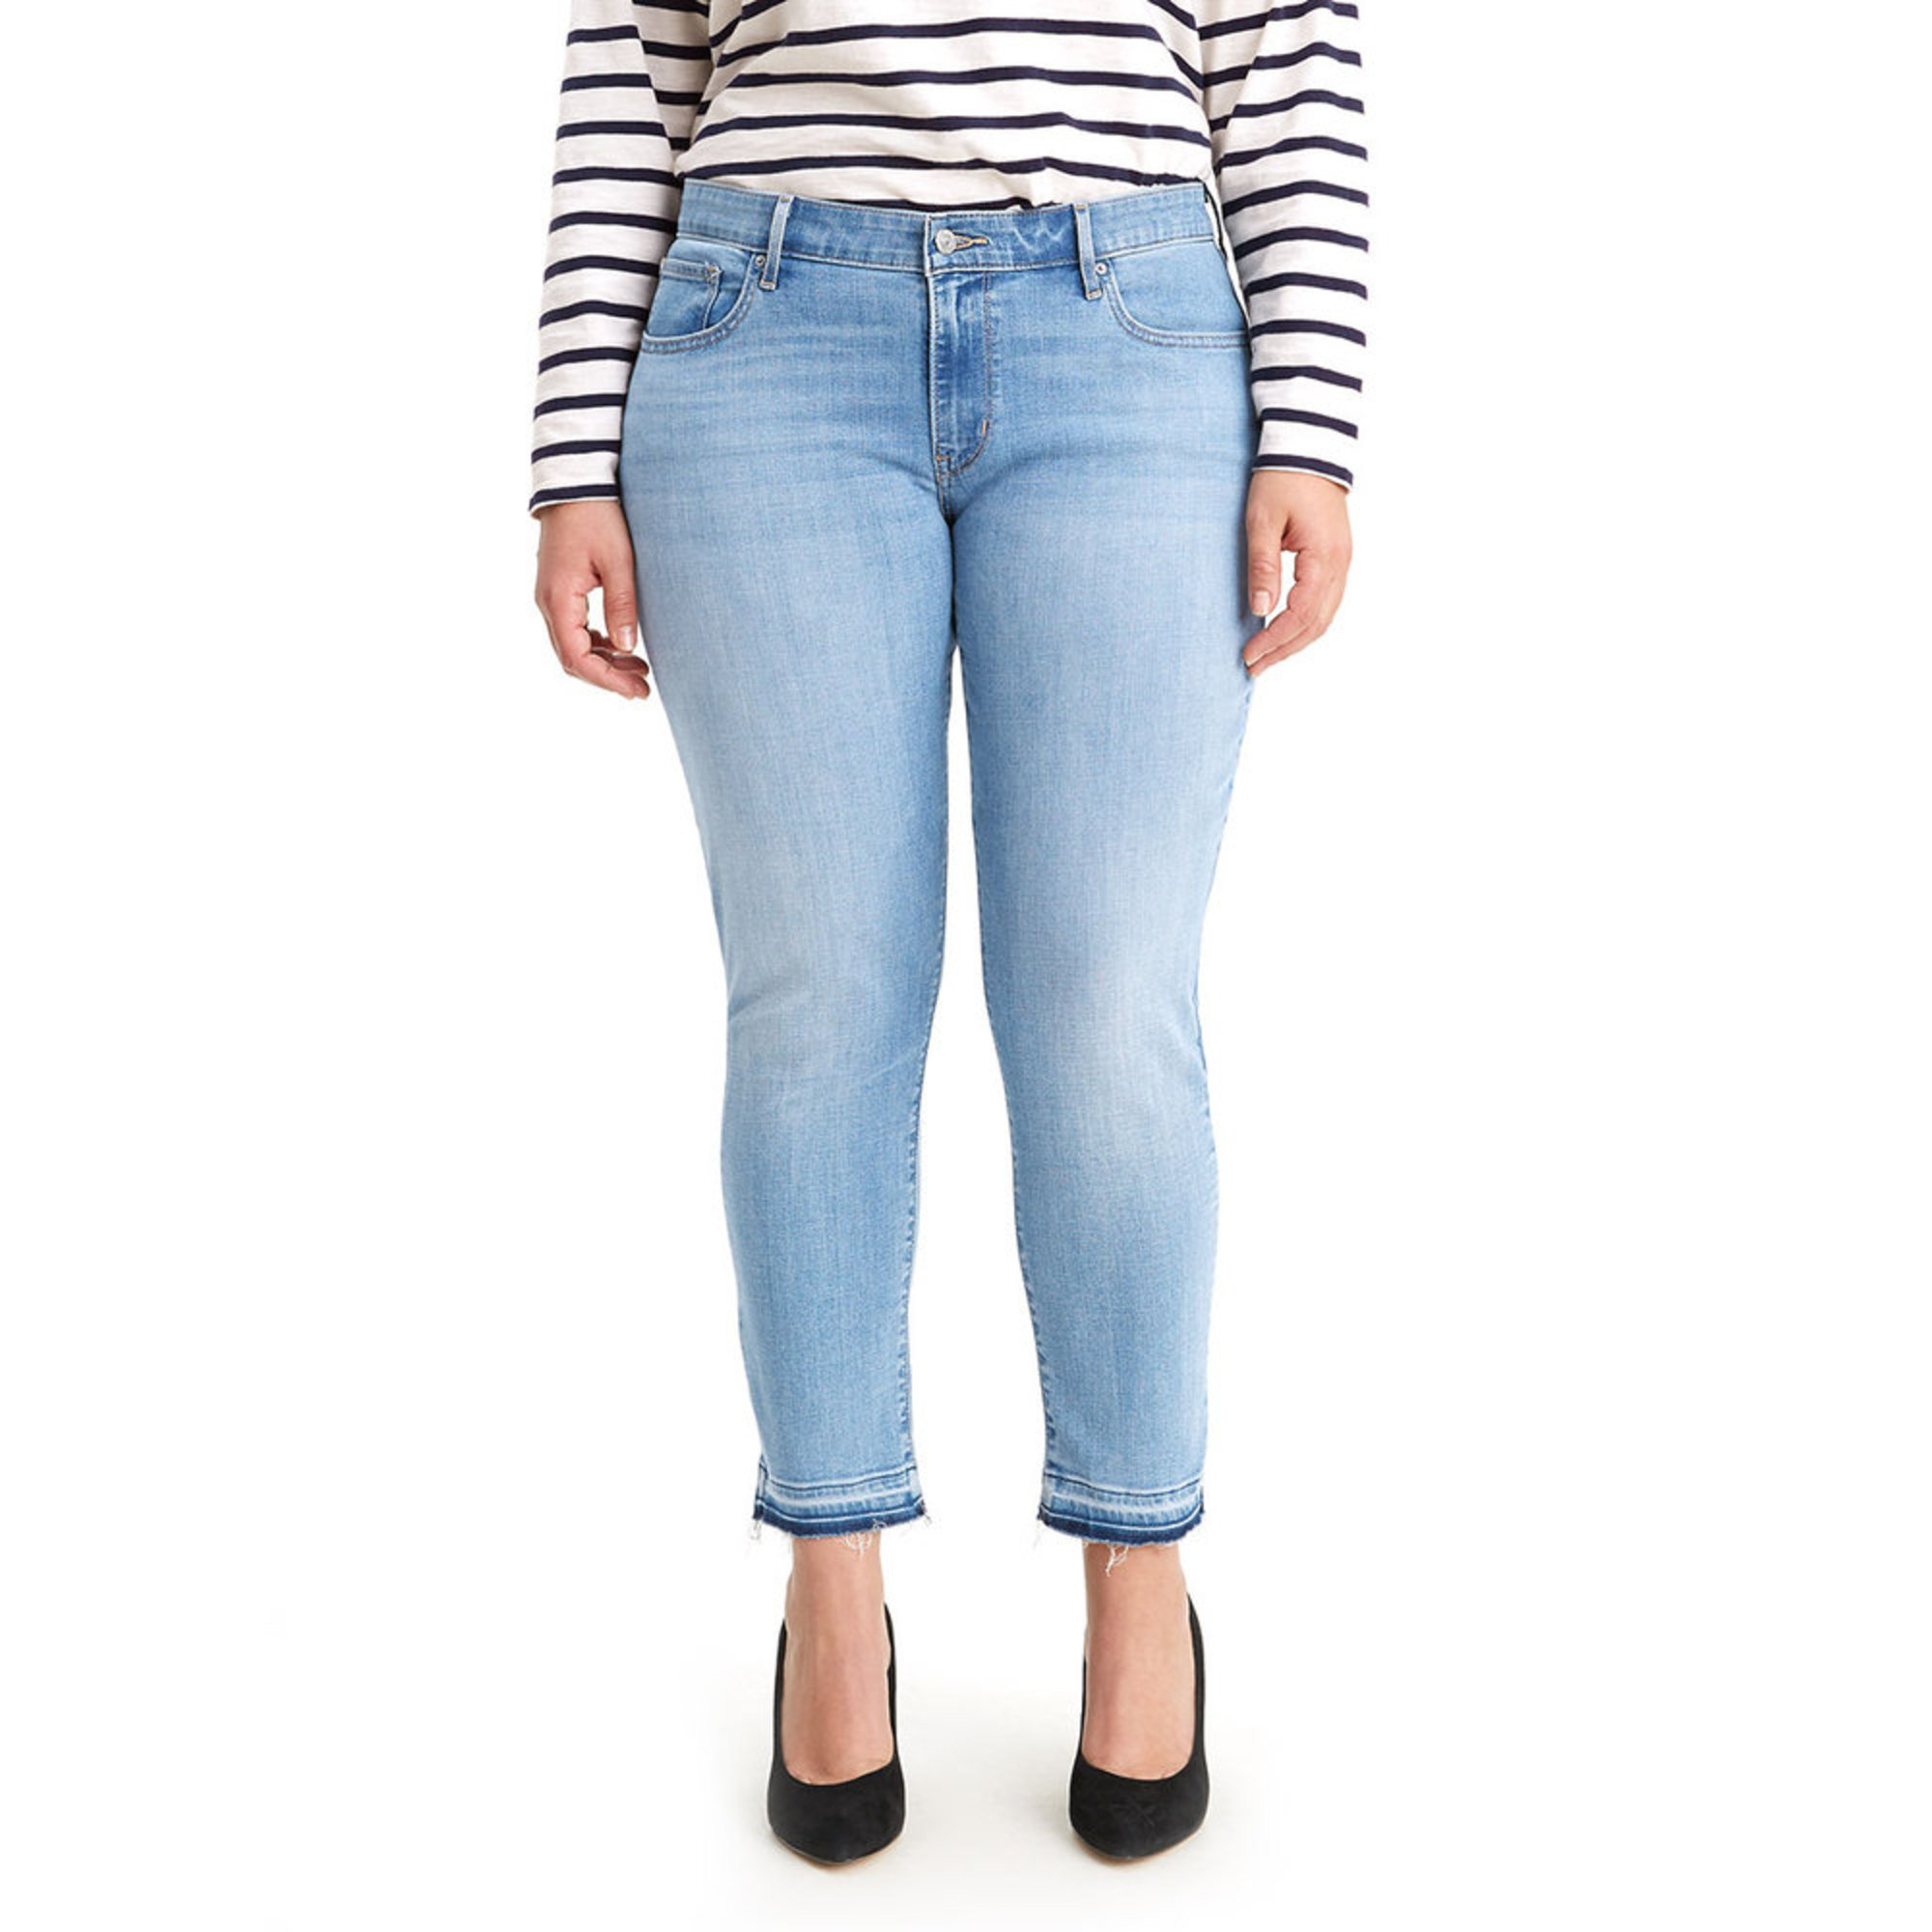 8da4f8d1feb6 Levi's Women's 711 Skinny Ankle Jeans 27 | Jeans | Apparel - Shop ...